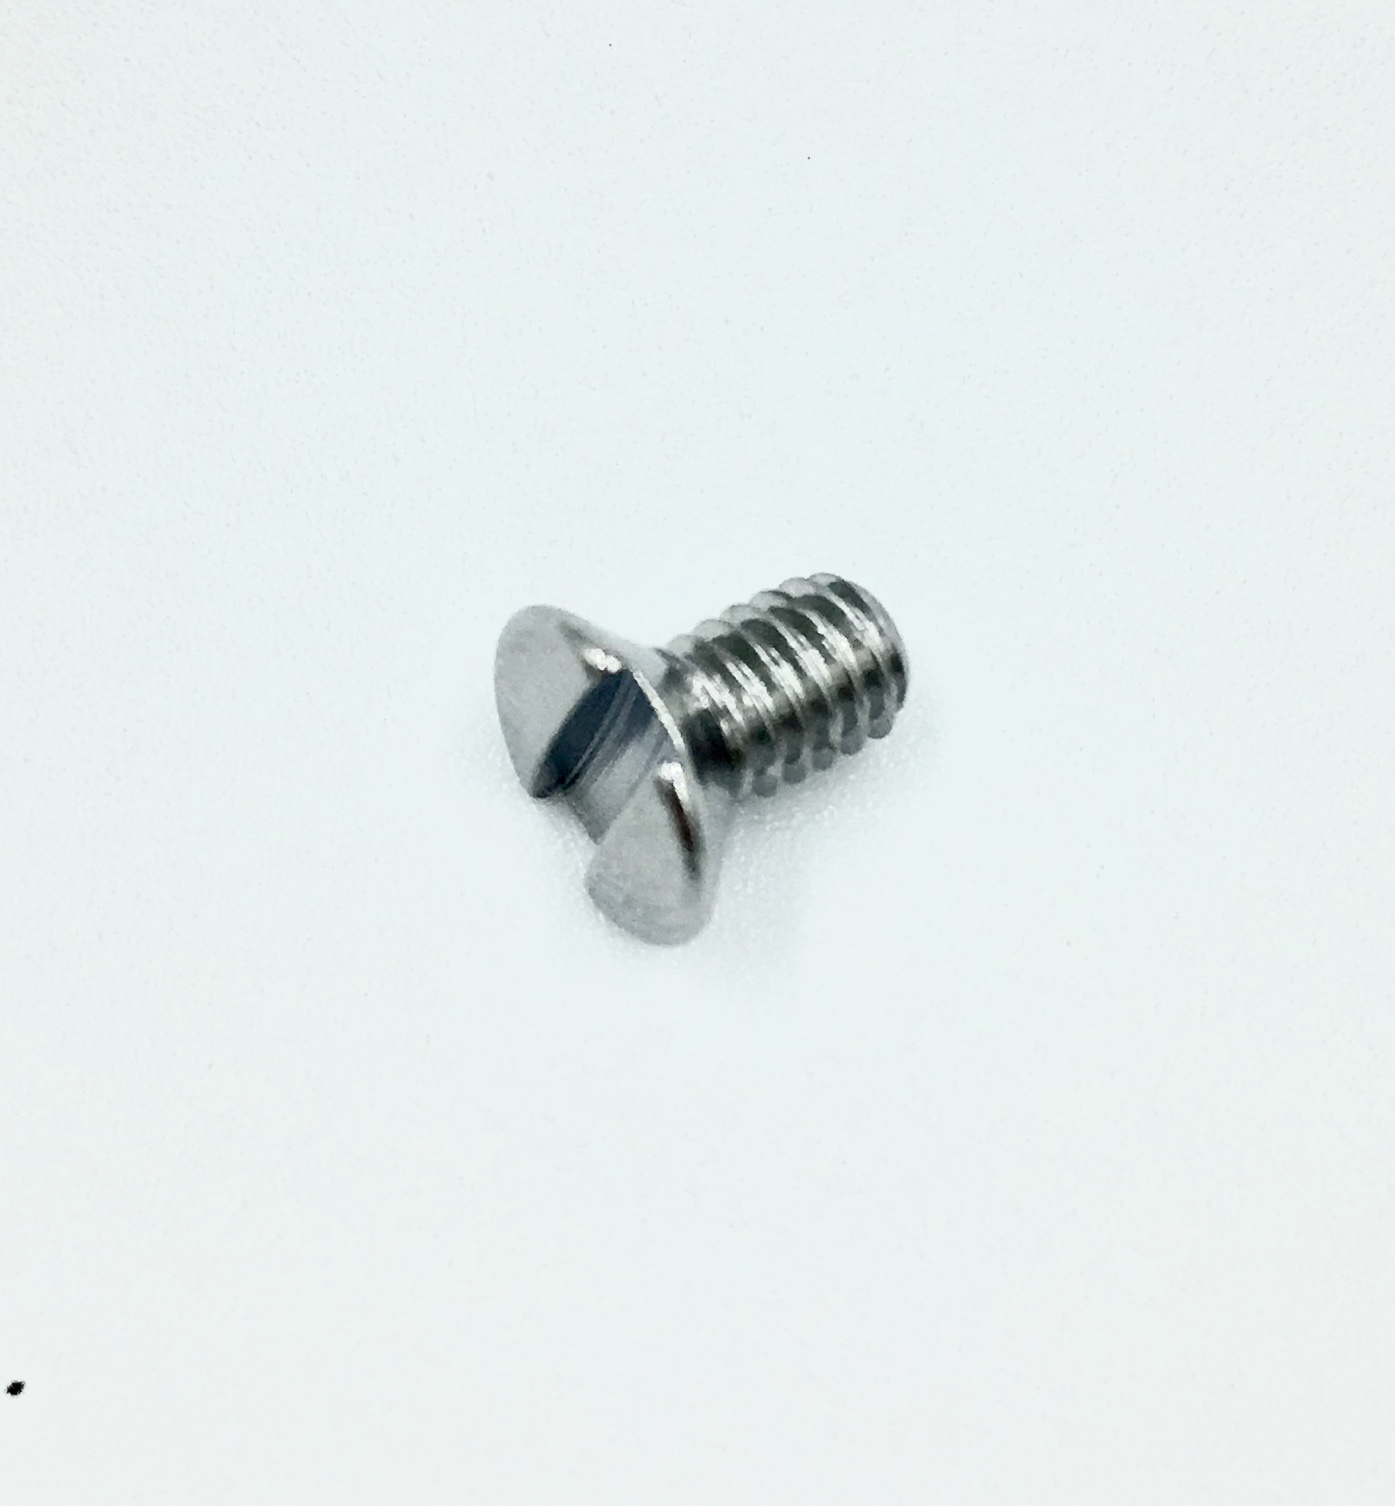 Needle Plate Screw - X50487021